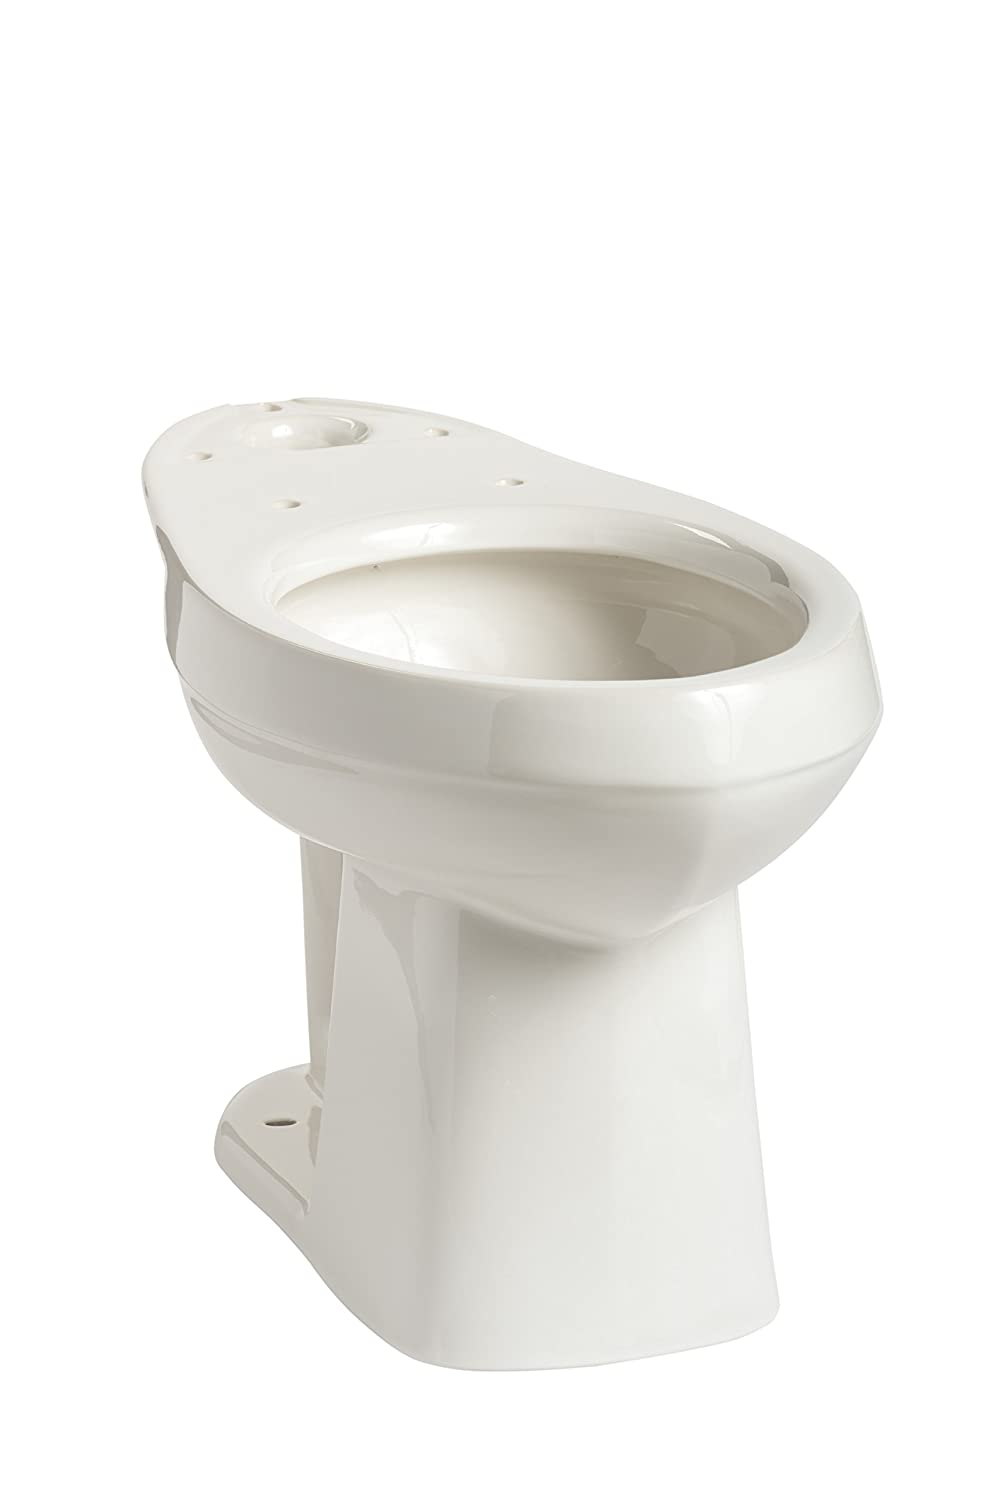 Toilet Bowl ONLY White Mansfield Plumbing 148 Quantum Elongated Front